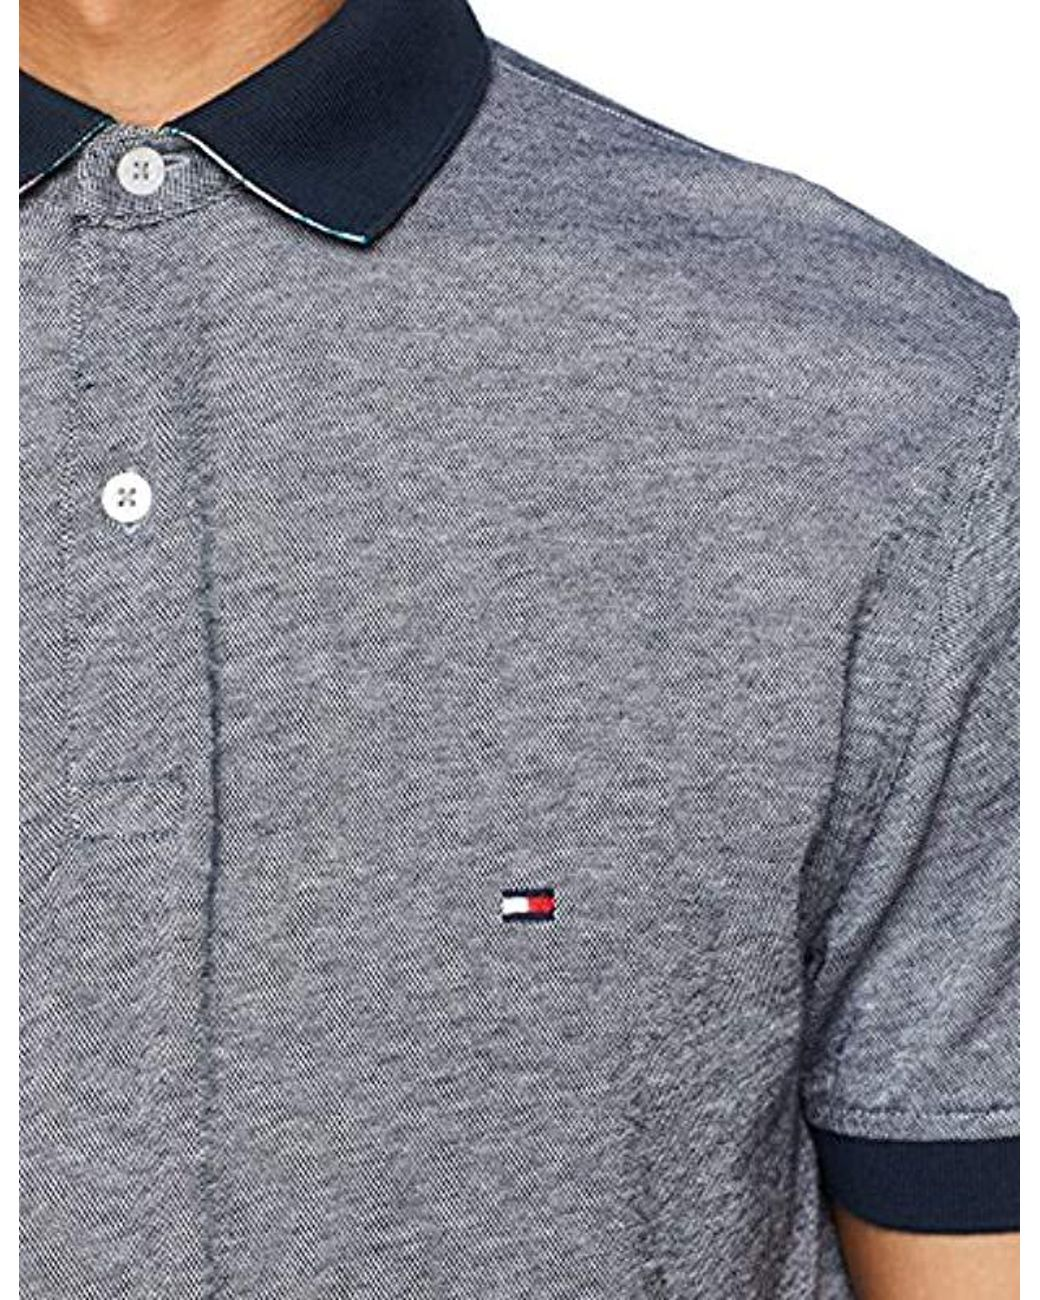 e2e159b4 Tommy Hilfiger Printed Undercollar Regular Polo Shirt in Blue for Men -  Save 14% - Lyst